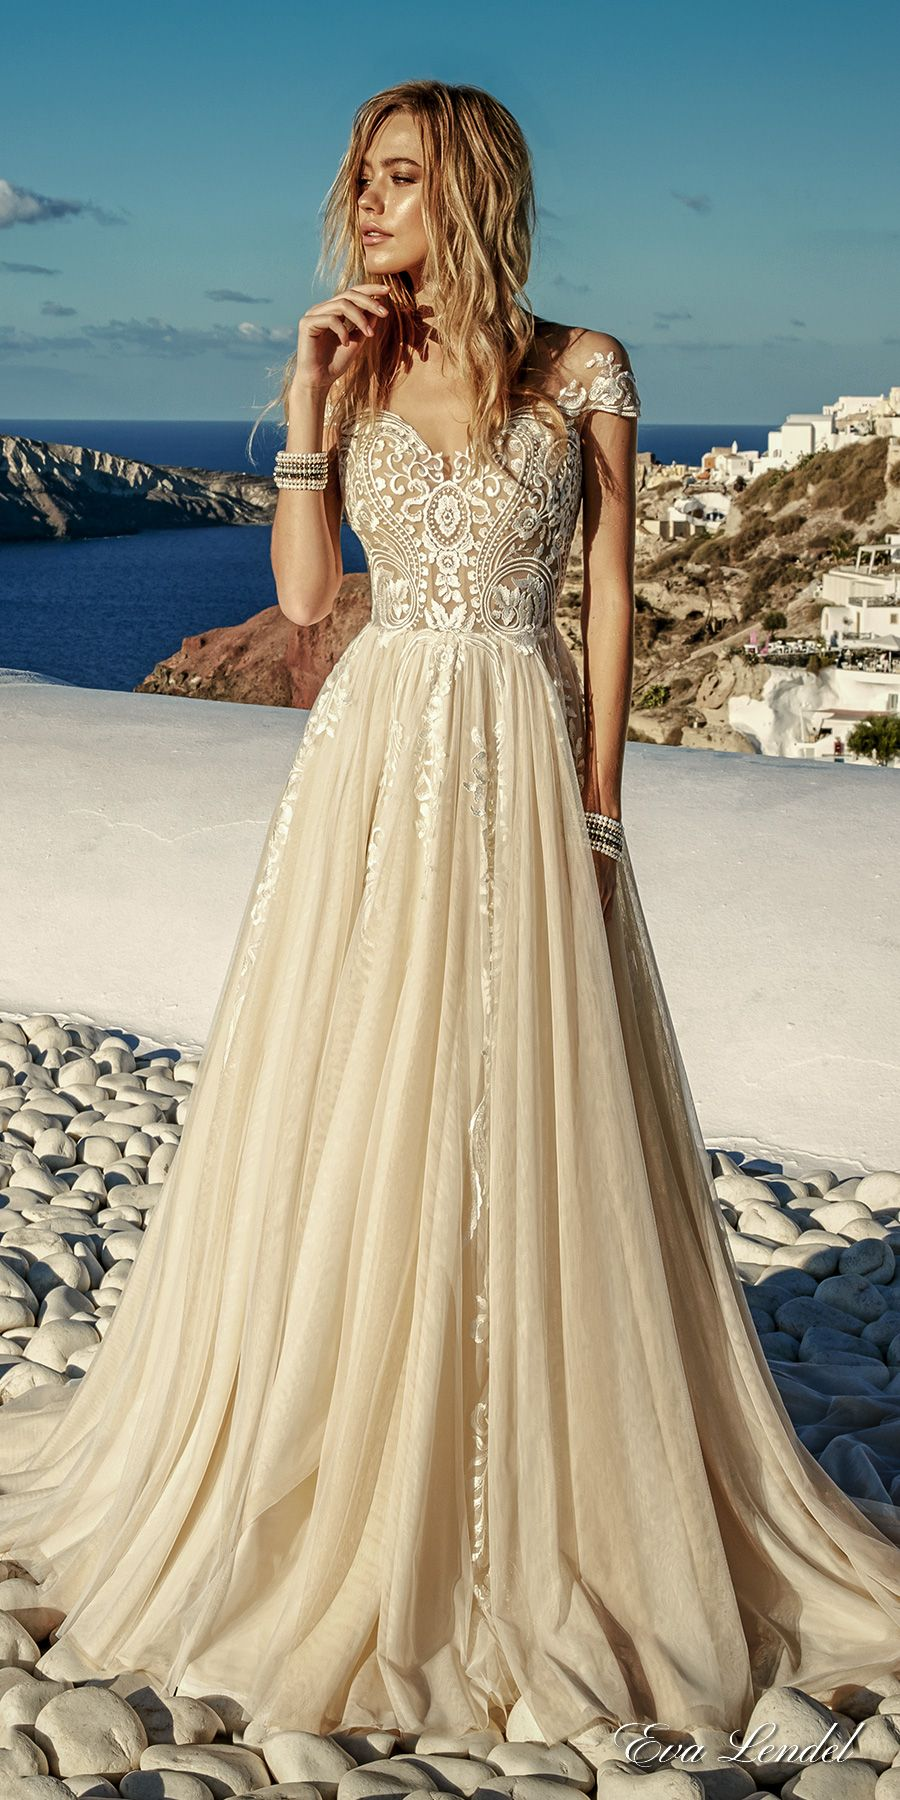 Different color wedding dresses  I always thought I wanted longer sleeves but this is stunning